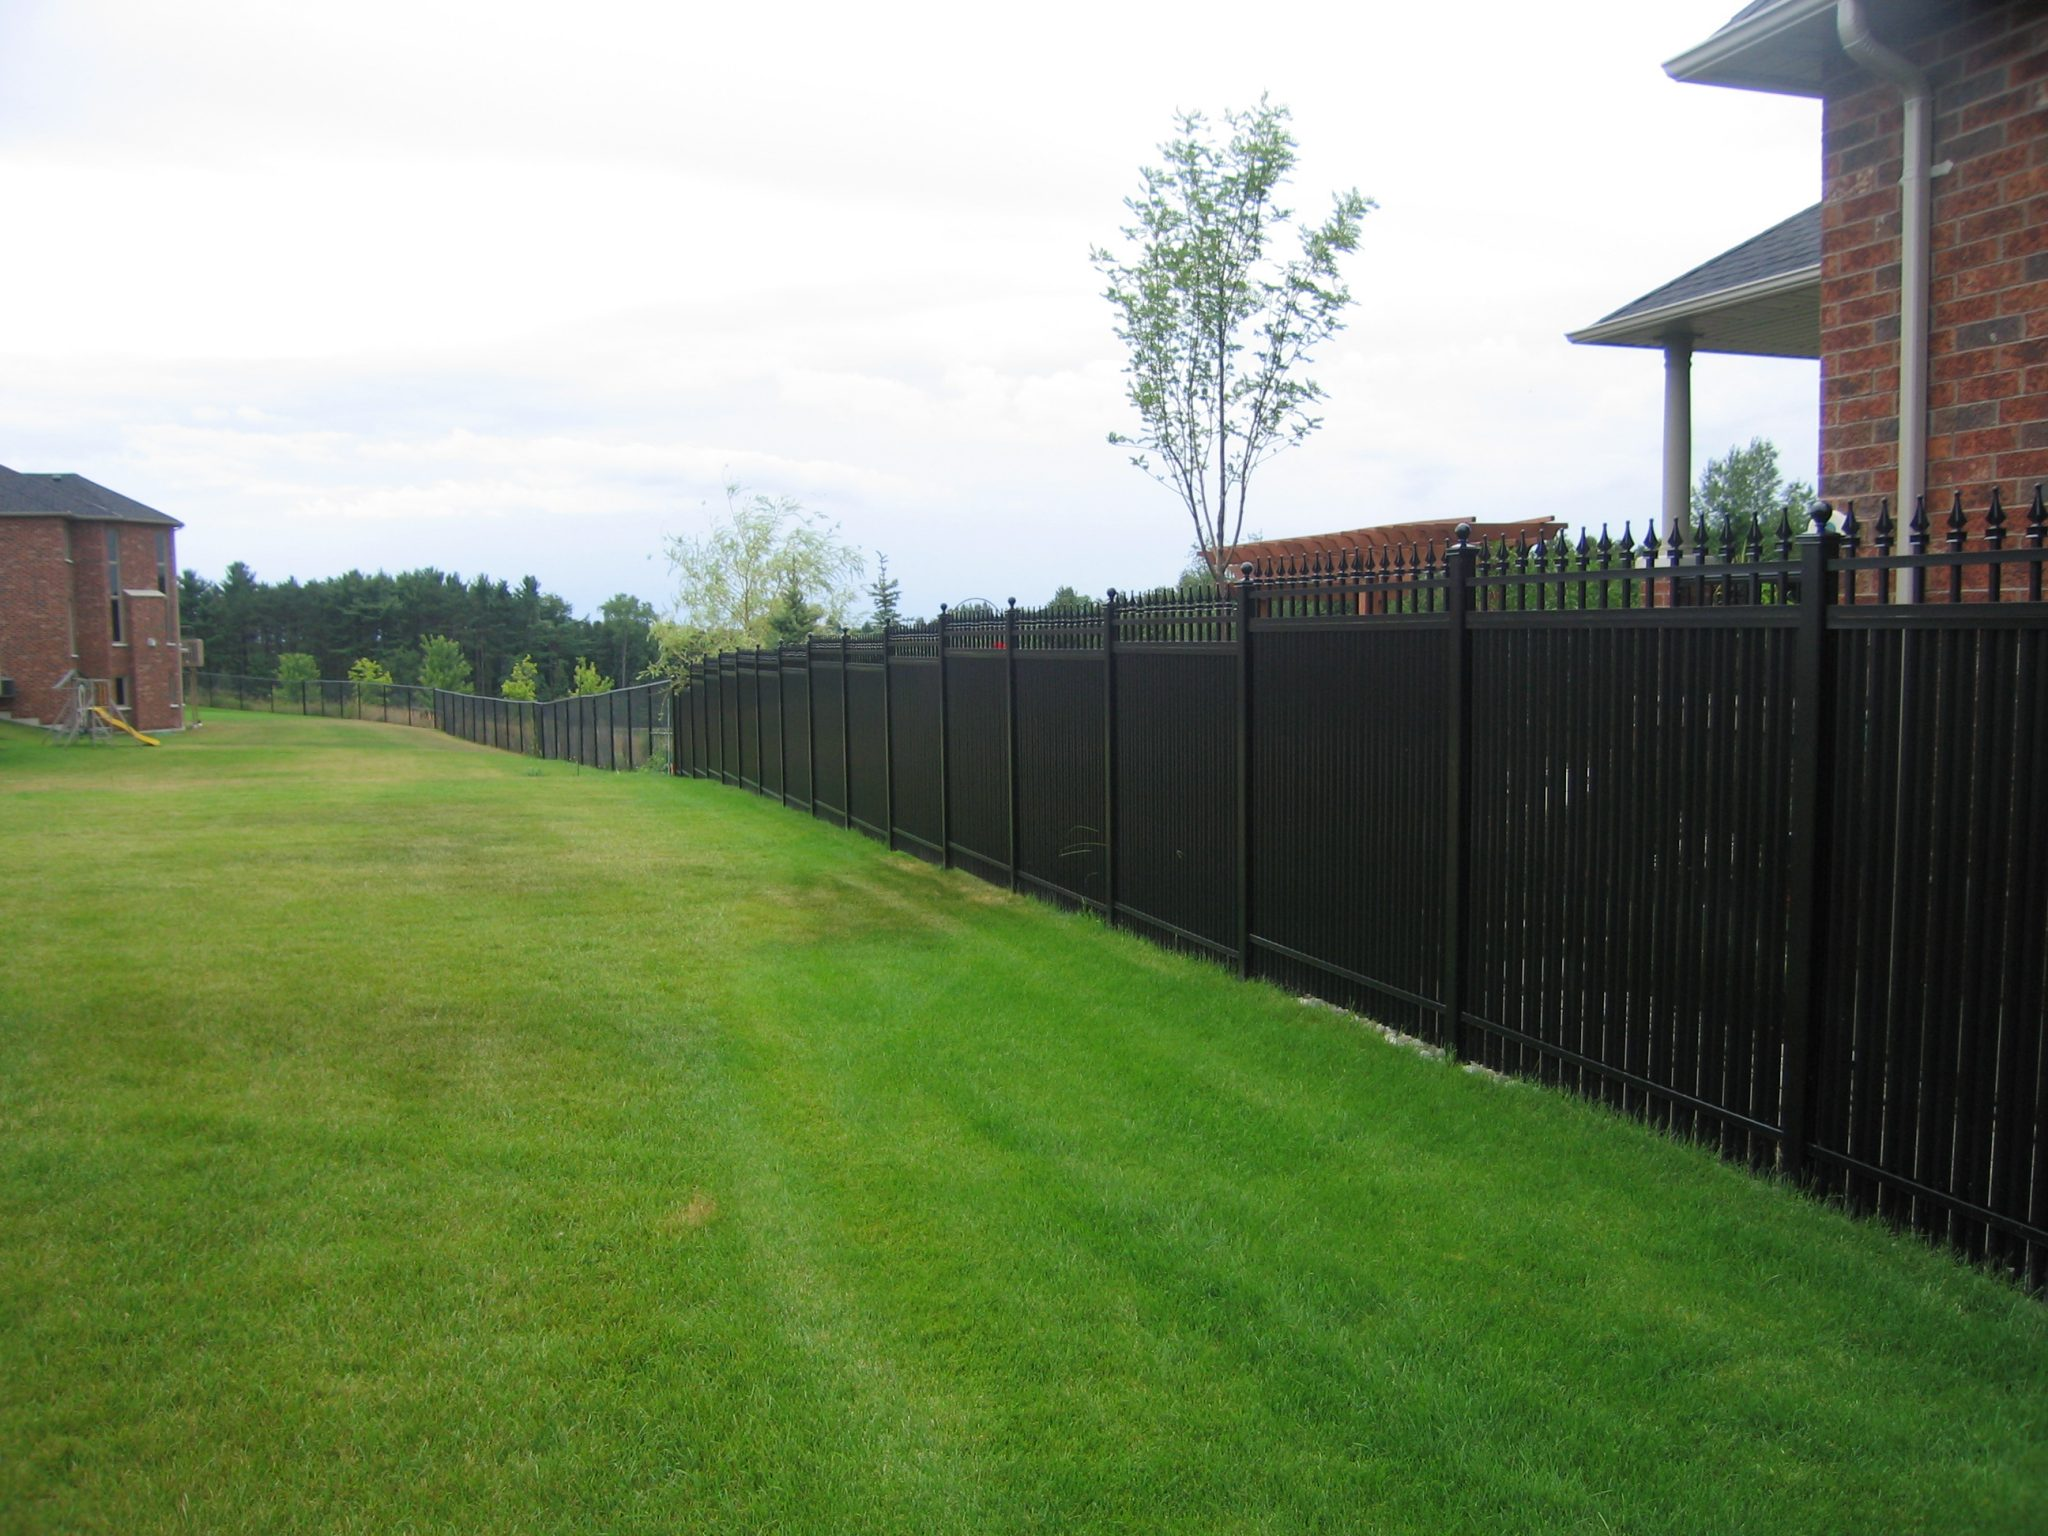 Subdivision divided by privacy fences